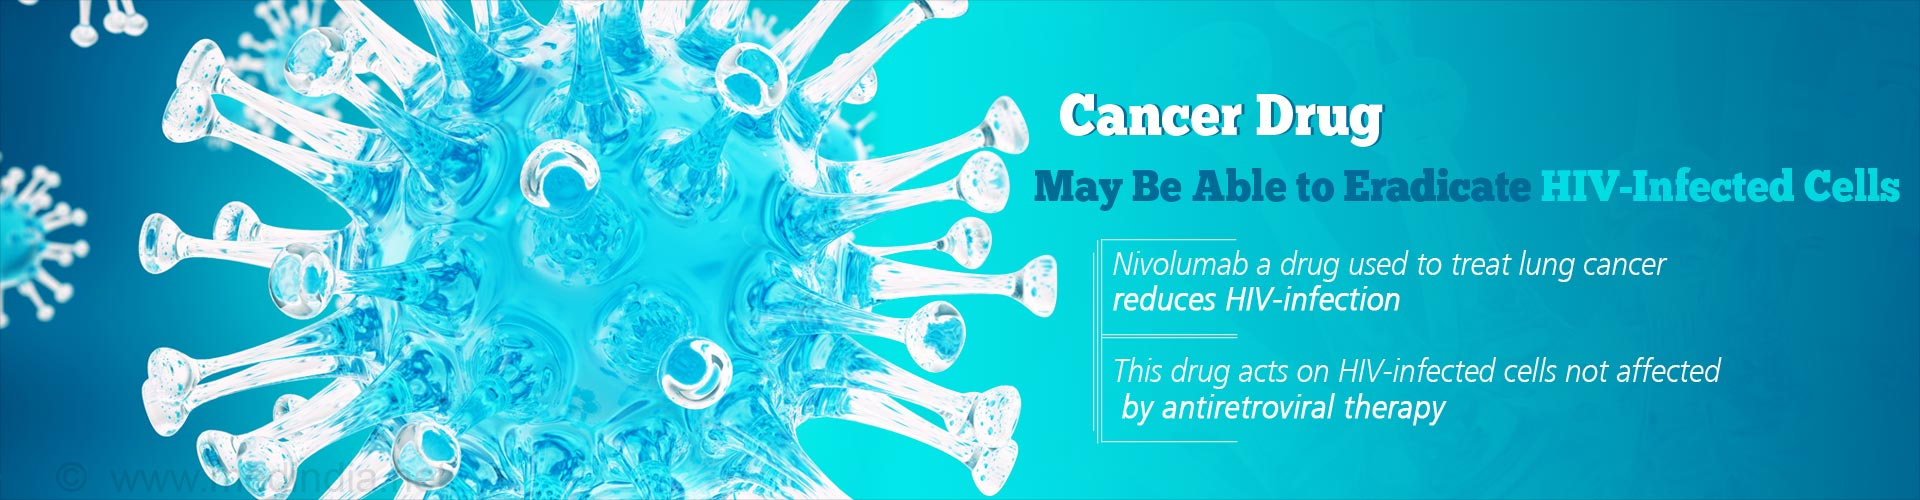 Cancer Drug Maybe Able to Eradicate HIV-Infected Cells - Nivolumab a drug used to treat lung cancer reduces HIV-infection - This drug acts on HIV-infected cells not affected by antiretroviral therapy